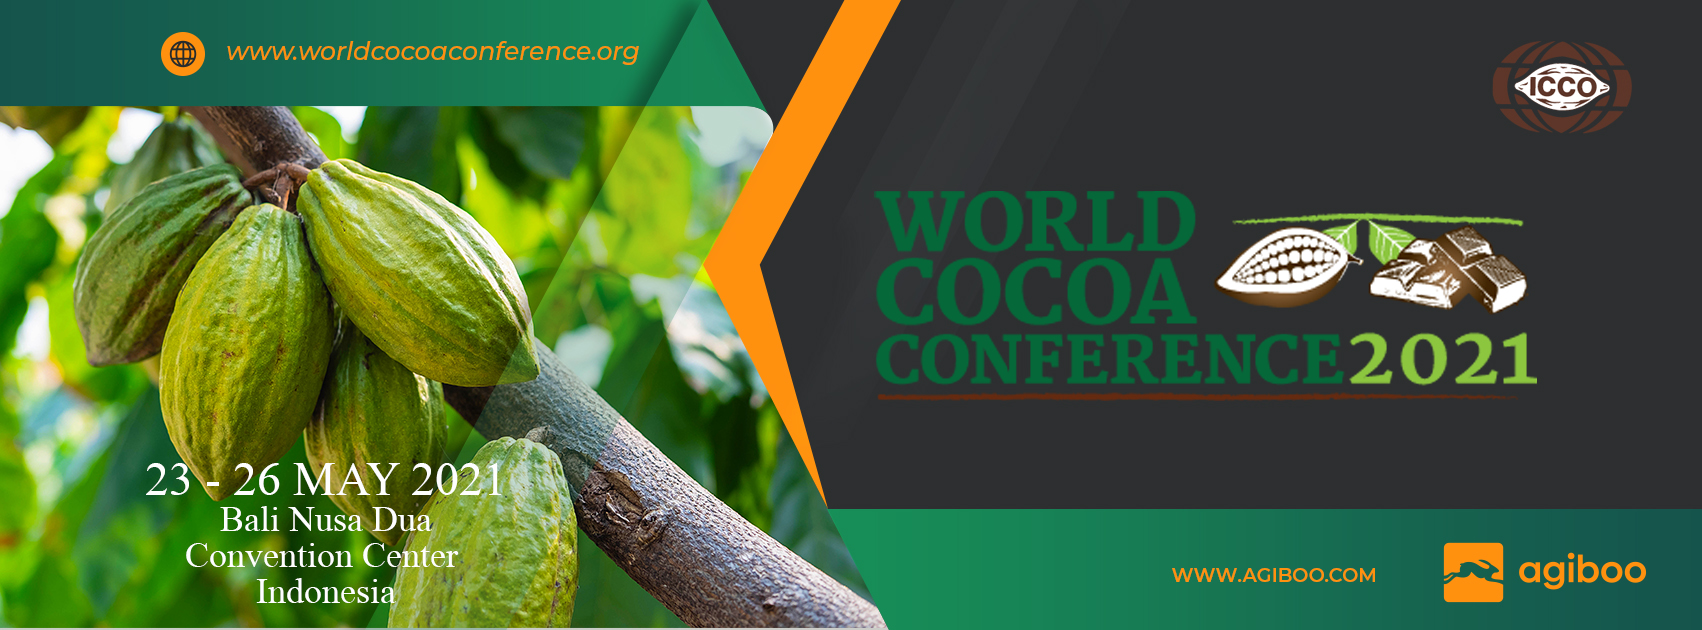 World Cocoa Conference 2021 banner cocoa beans